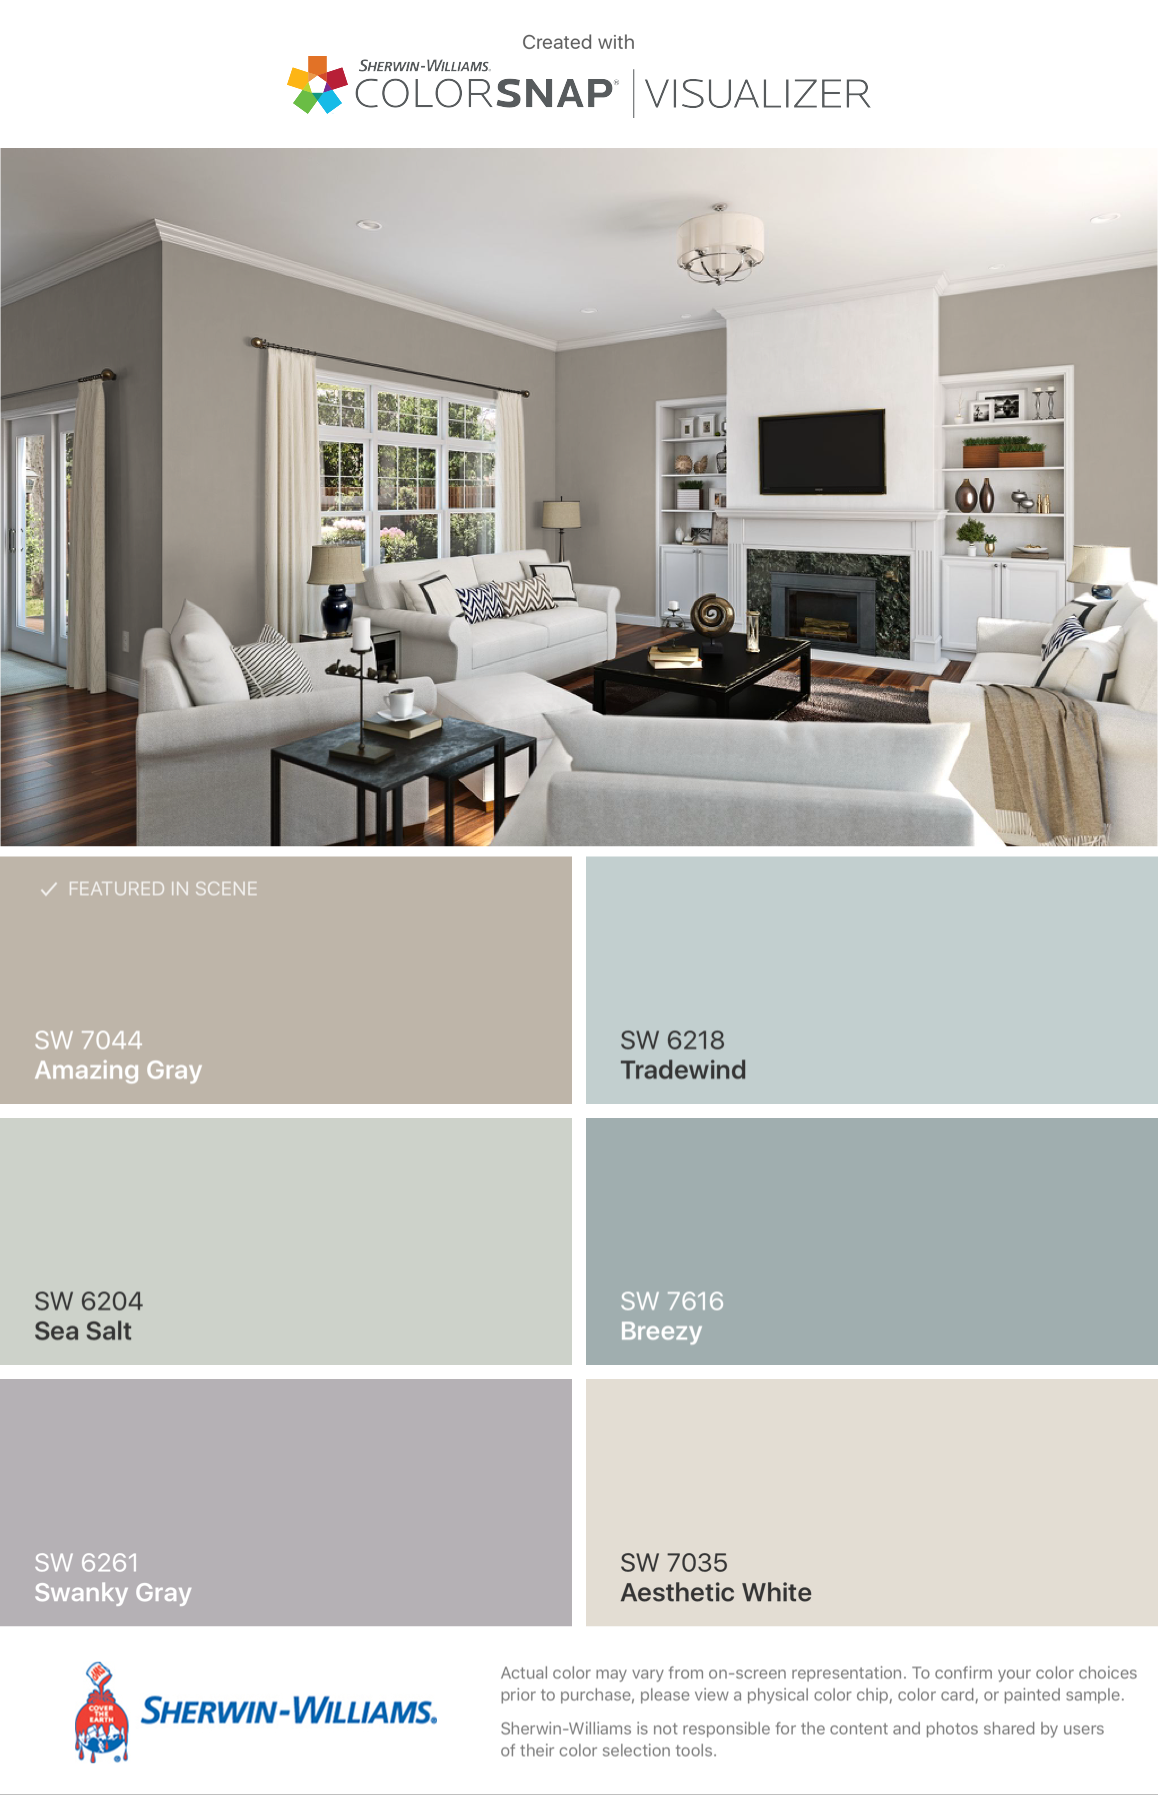 Pin By Kristi Pierson On Paint Ideas In 2020 Paint Colors For Living Room Bedroom Paint Colors Paint Colors For Home